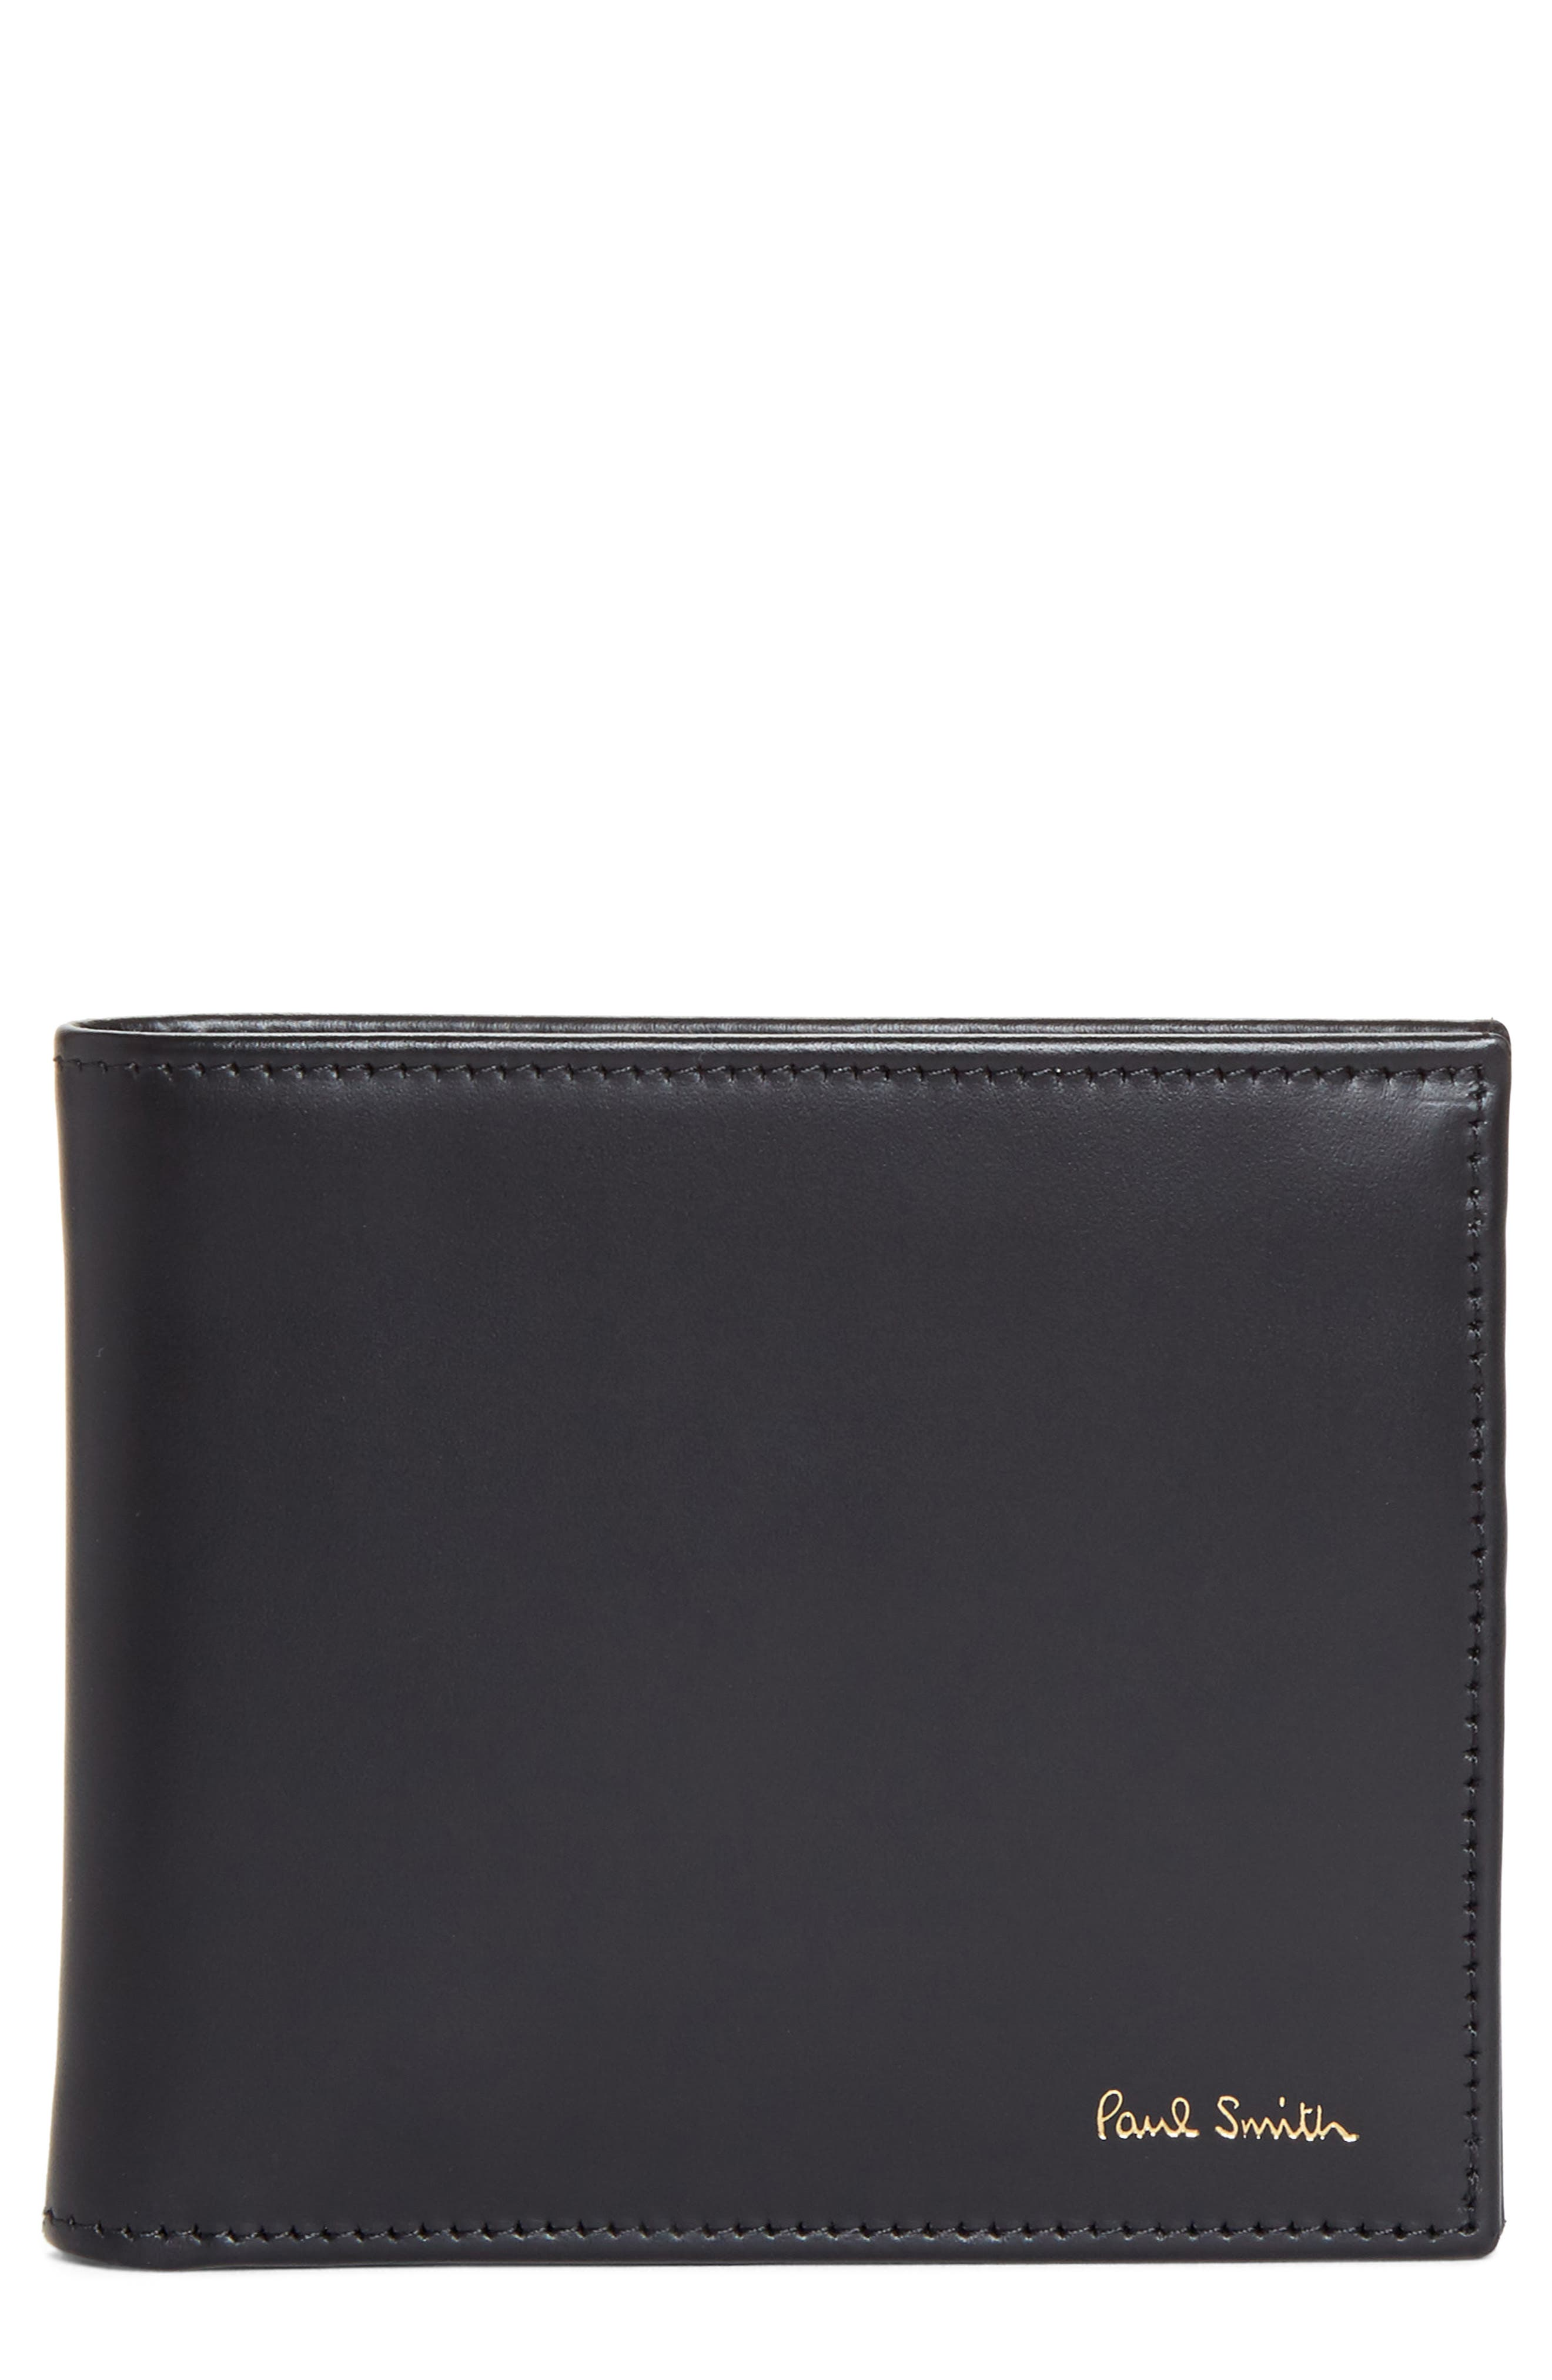 Paul Smith Multistripe Leather Wallet